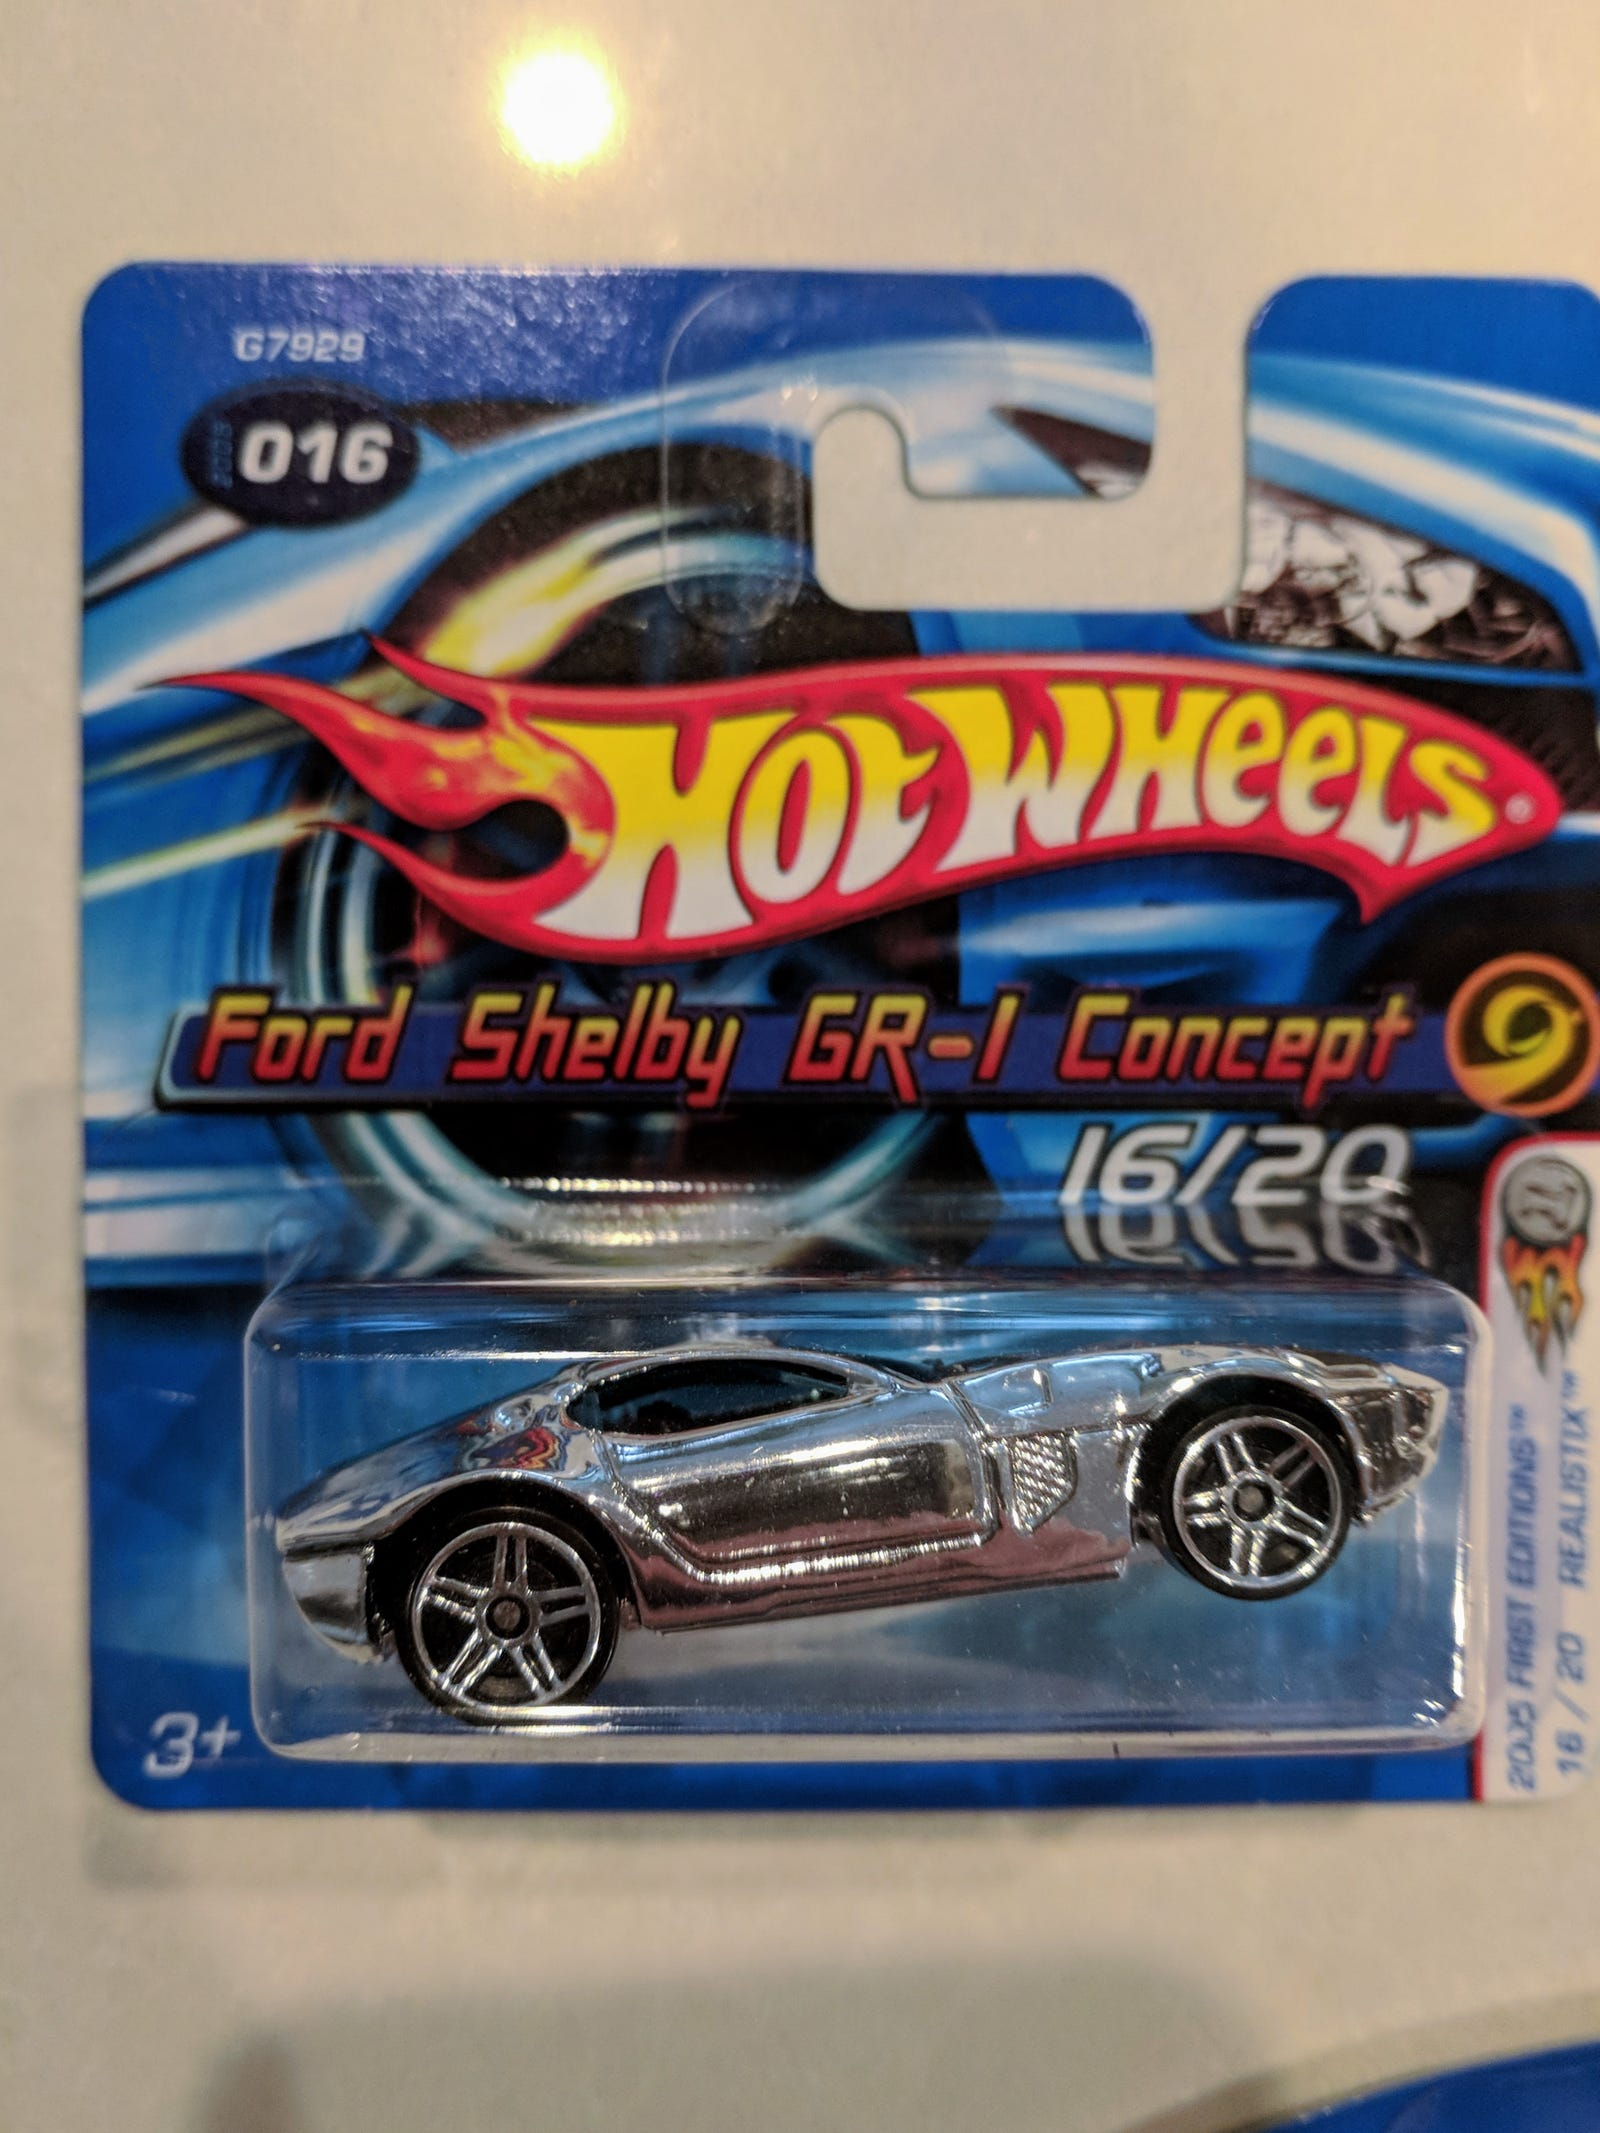 Lot 9: Concept Cars - $10 for 17 cars Including chrome Shelby GR1 on a short card...